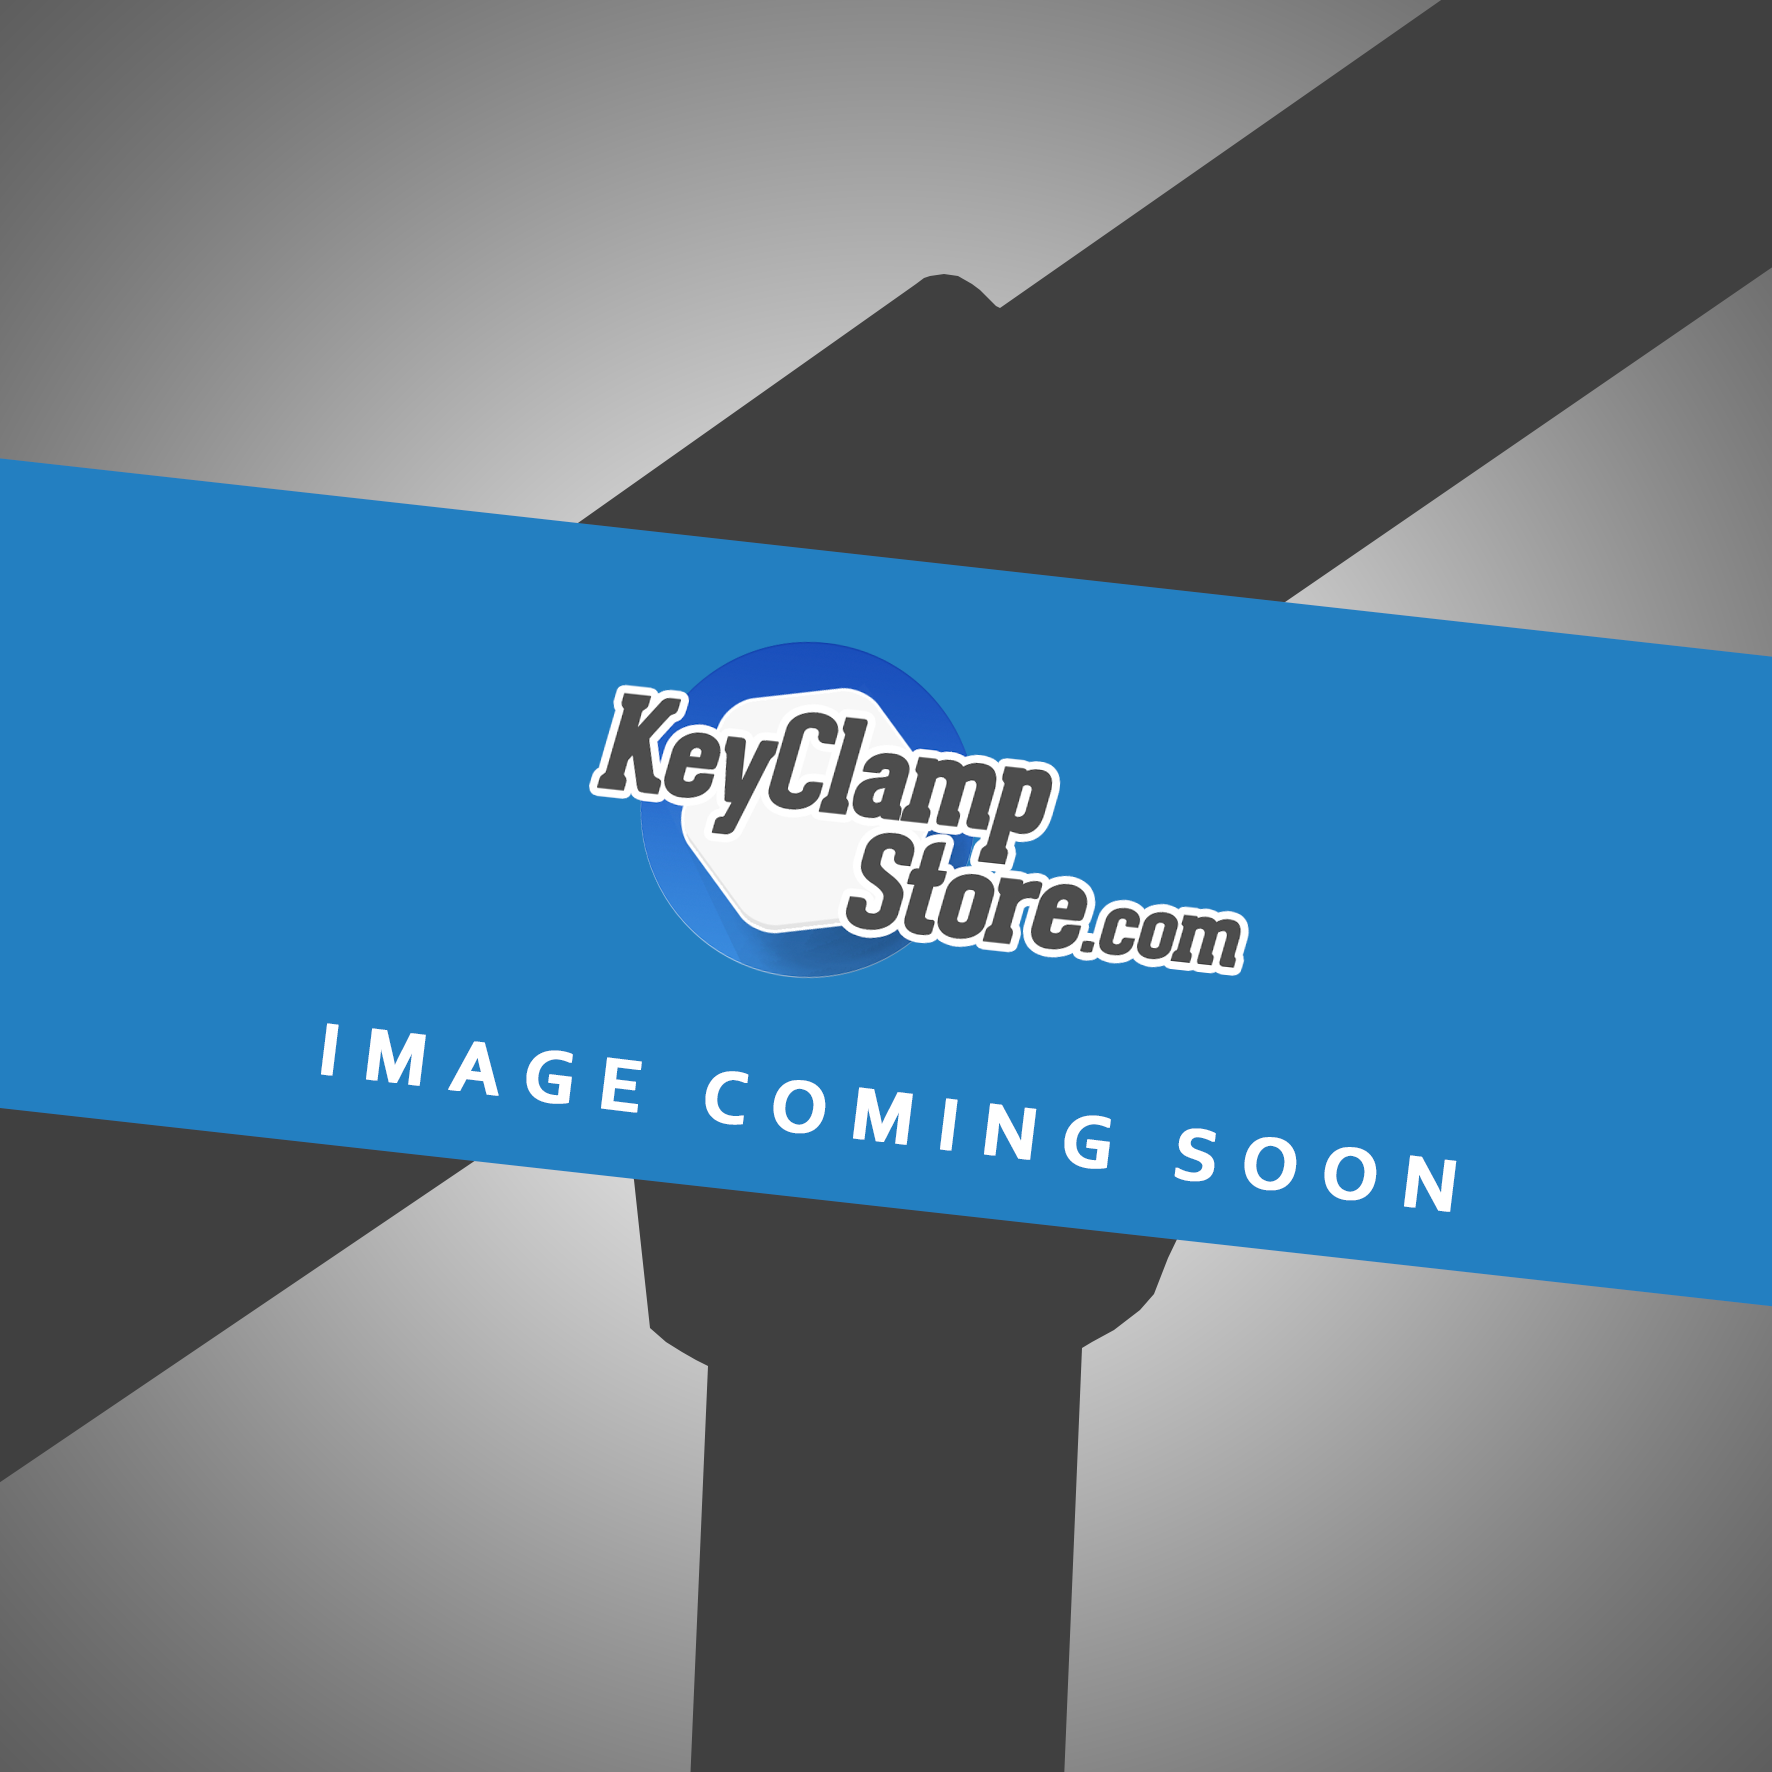 about key clamp store